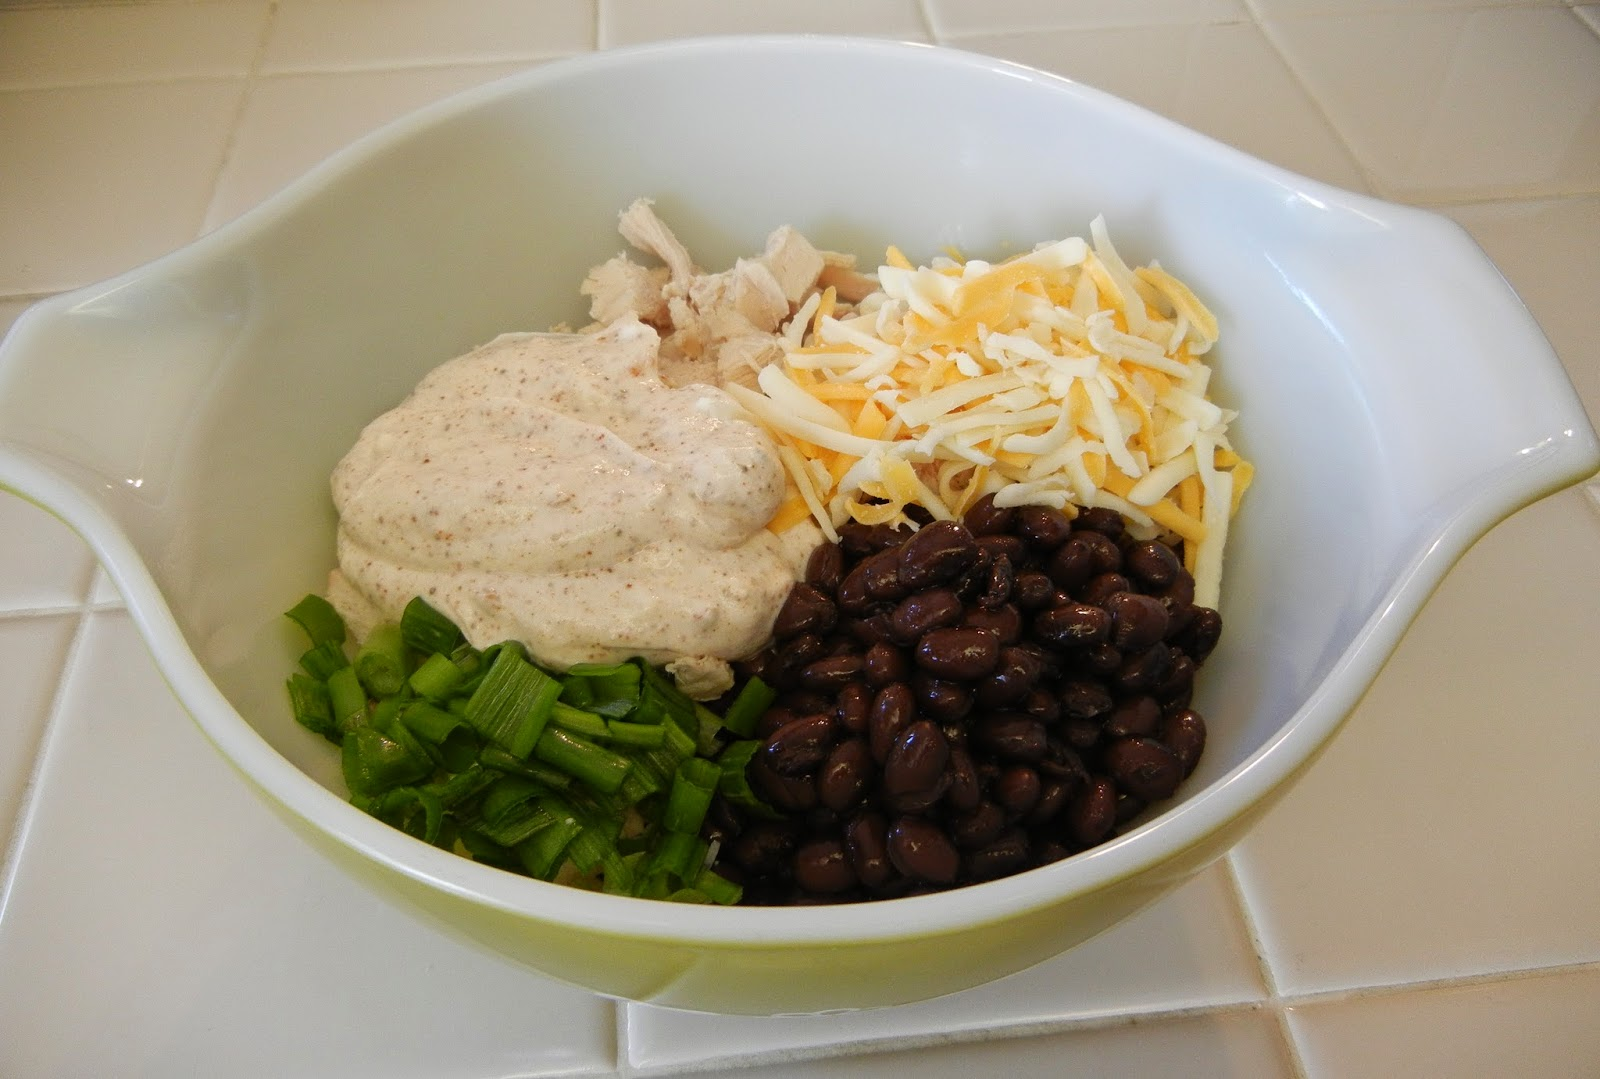 Mexican+Chicken+Black+Bean+Salad+Eggface+1 Weight Loss Recipes Post Weight Loss Surgery Menus: A day in my pouch